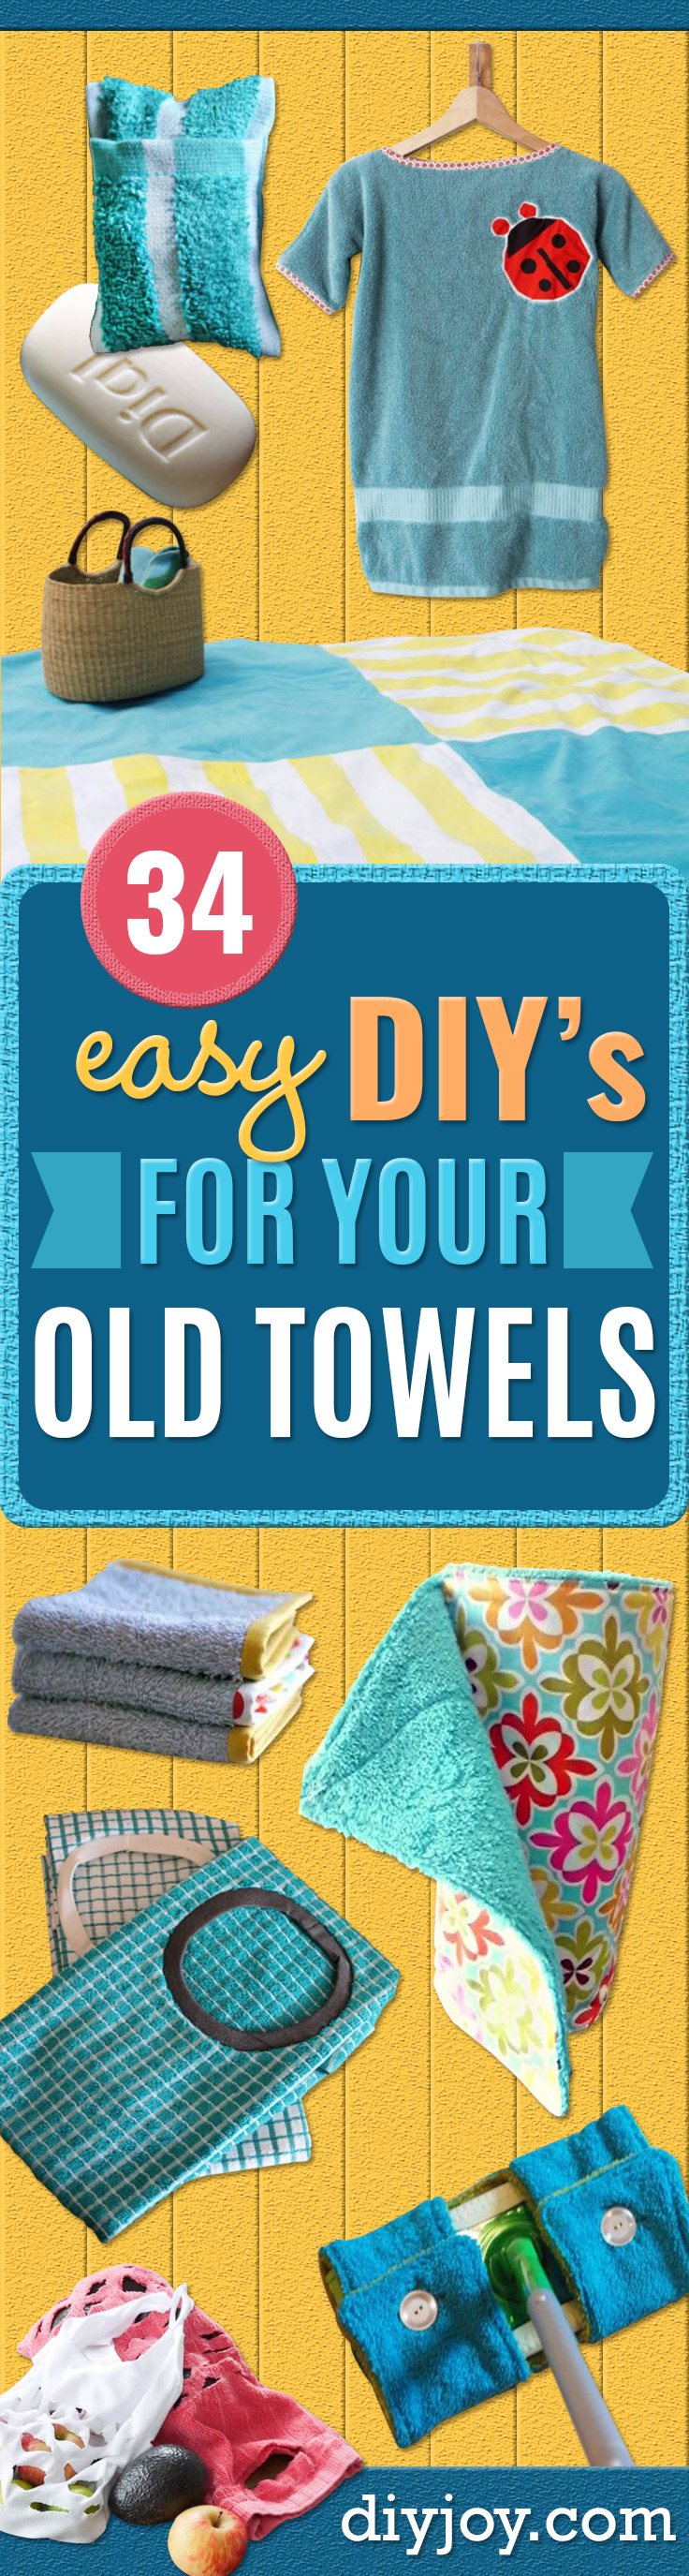 diy ideas with towels- Cool Crafts To Make With An Old Towel - Cheap Do It Yourself Gifts and Home Decor on A Budget #diy #sewing